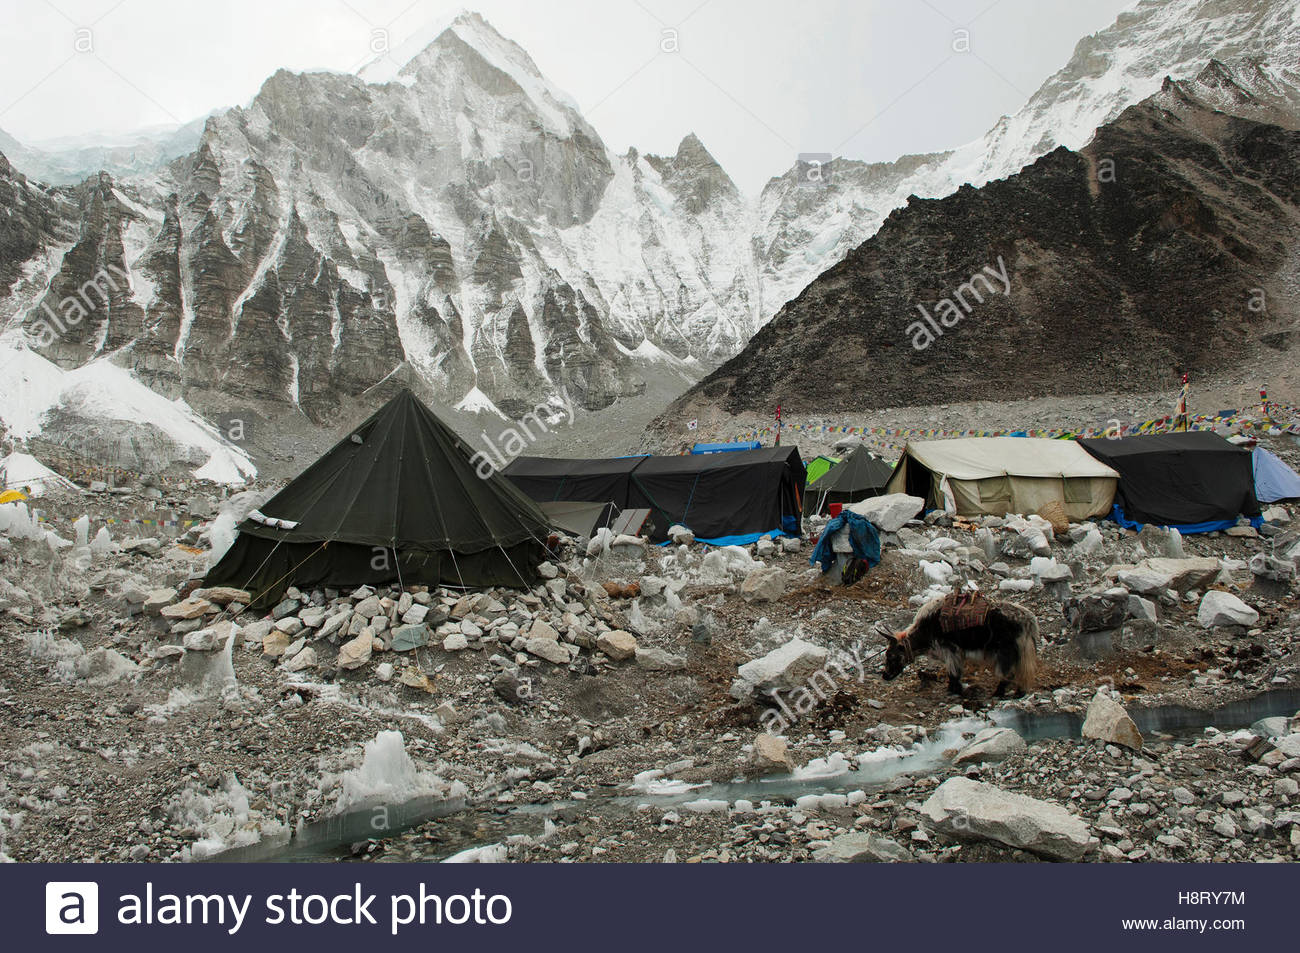 A campsite in the Himalayan Mountains. - Stock Image